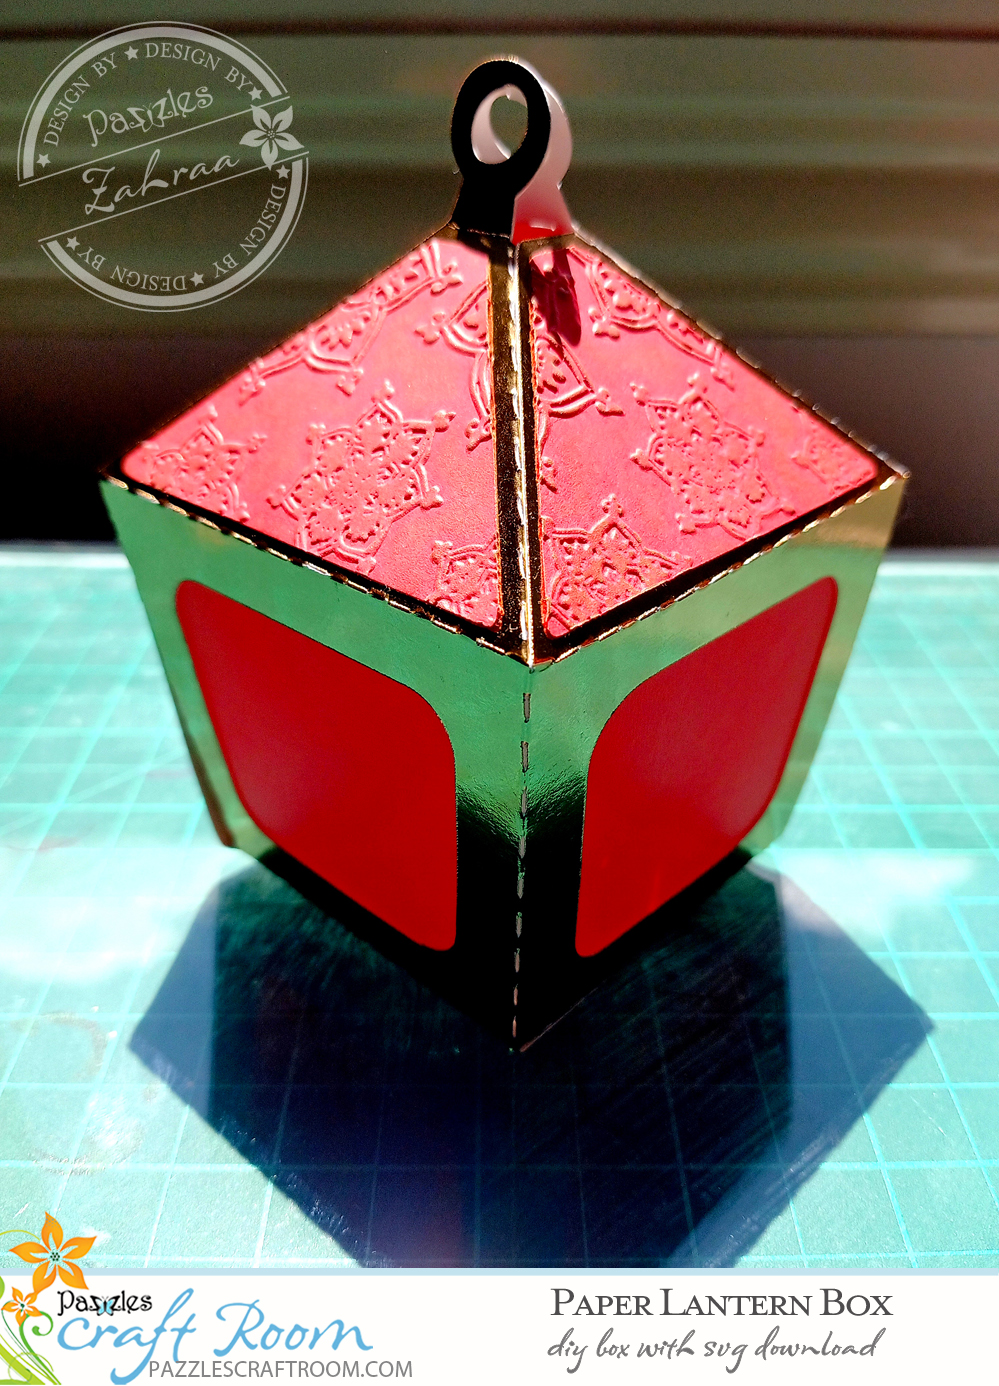 Pazzles DIY Lantern Box with instant SVG download. Instant SVG download compatible with all major electronic cutters including Pazzles Inspiration, Cricut, and Silhouette Cameo. Design by Zahraa Darweesh.